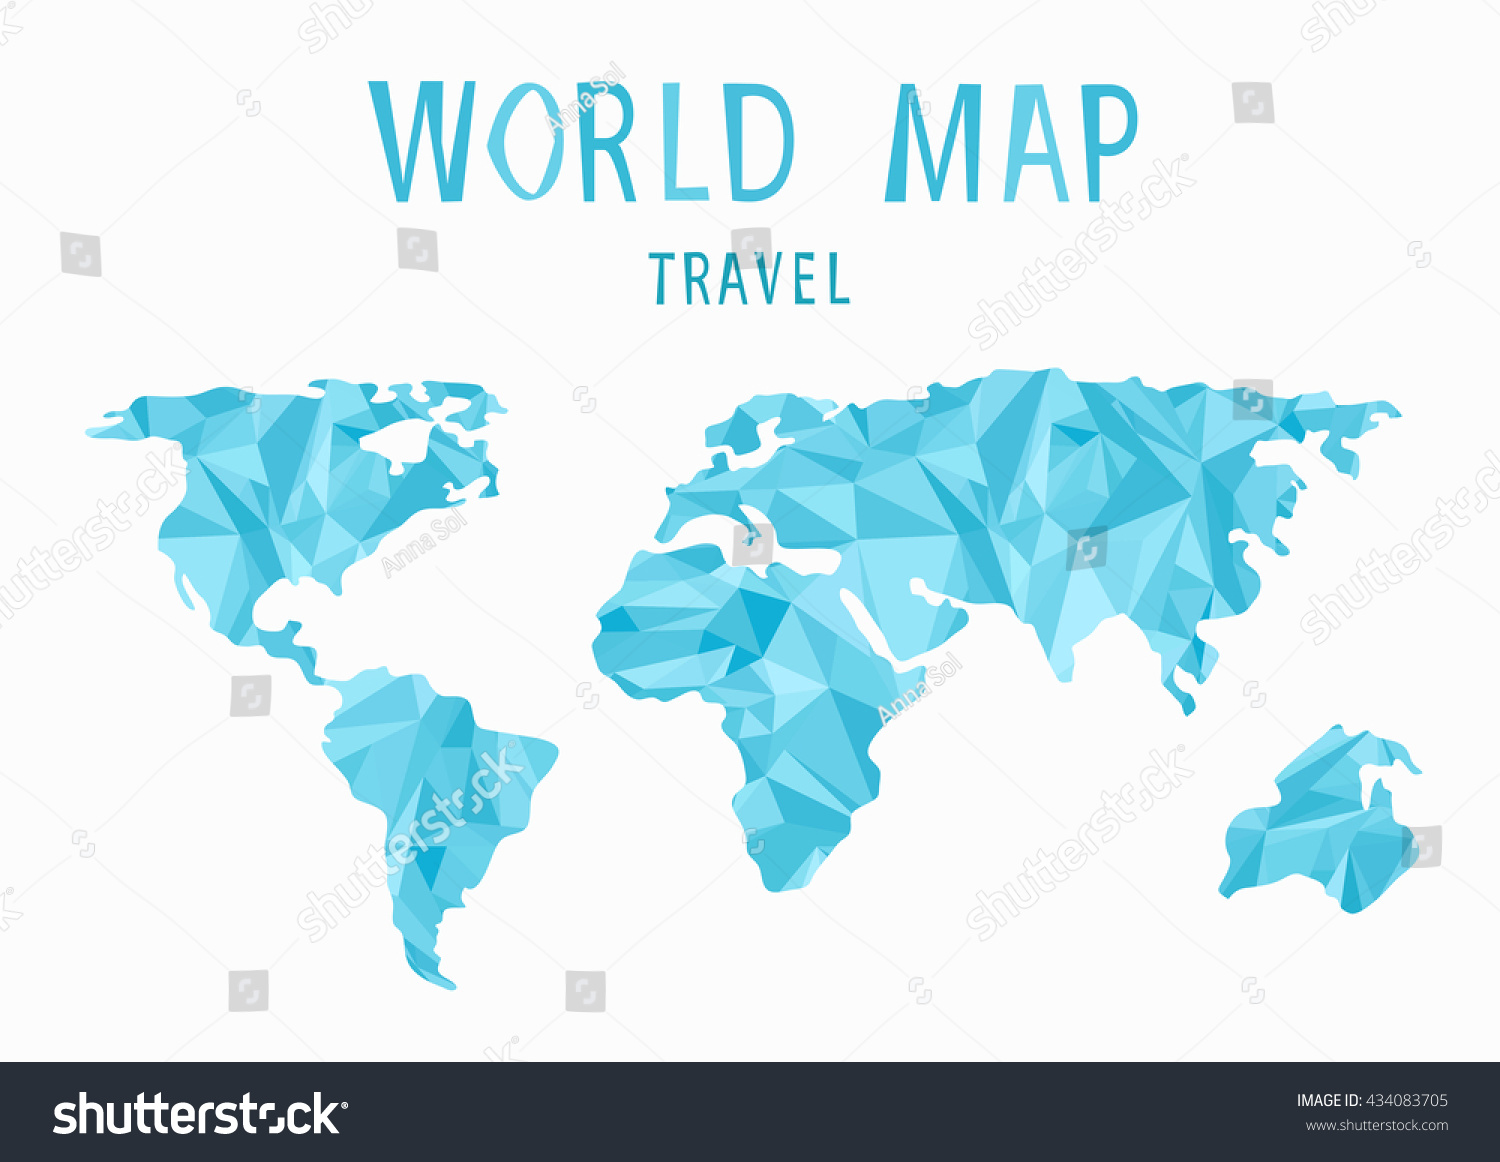 World map background polygonal style creative concept travel globe world map background in polygonal styleeative conceptavelobe map low poly gumiabroncs Image collections